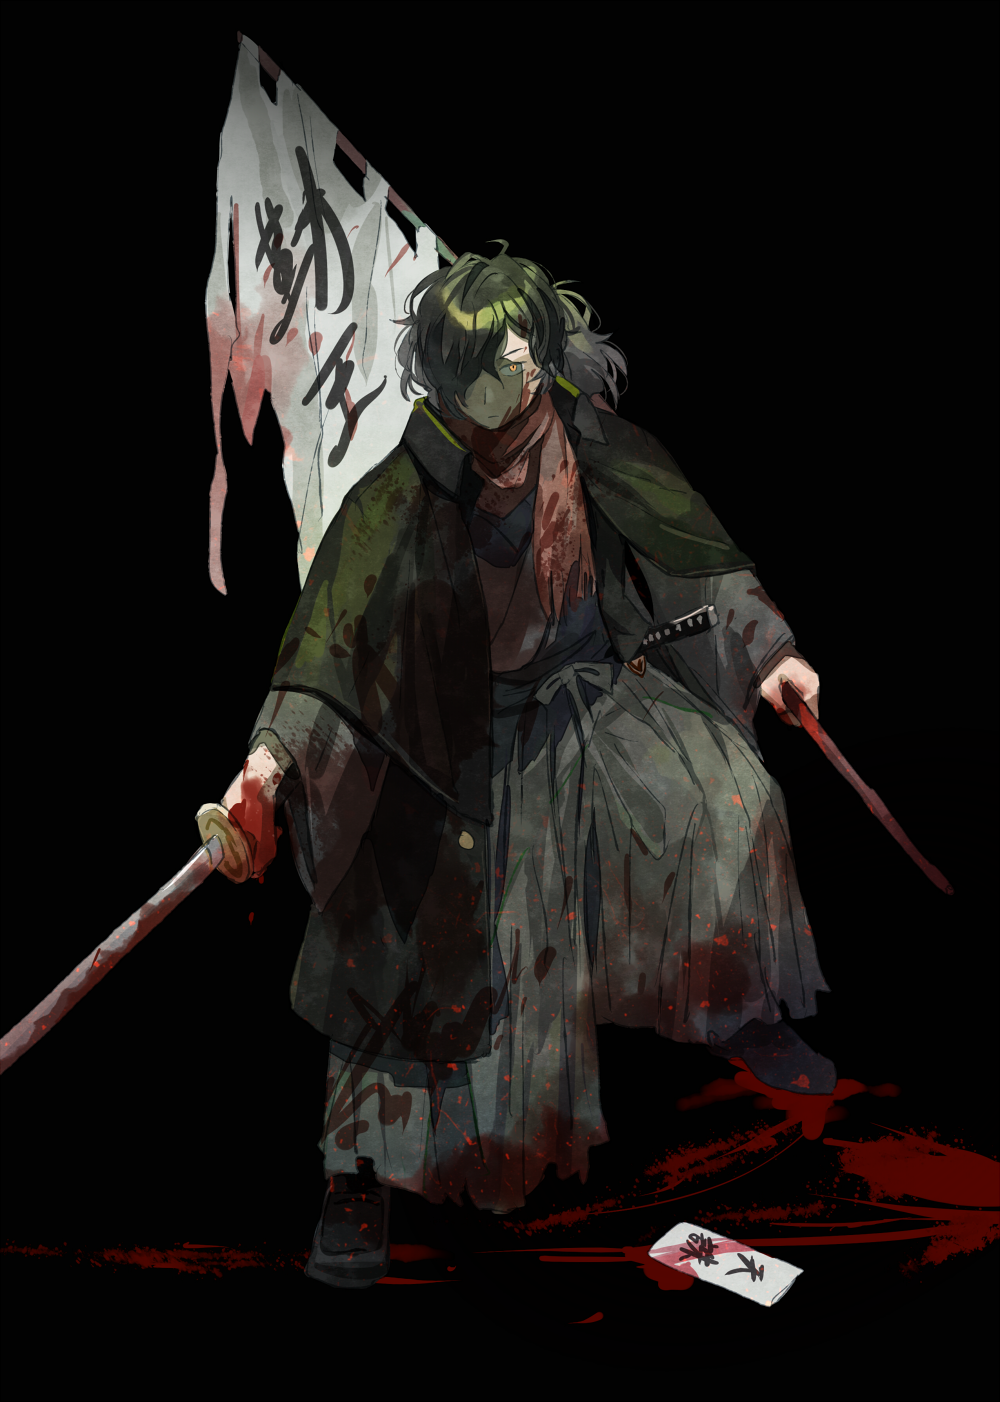 1boy banner black_background blood bloody_clothes bloody_hands bloody_weapon closed_mouth fate_(series) getiao green_hair hair_over_one_eye highres holding holding_sword holding_weapon katana male_focus okada_izou_(fate) red_scarf scarf simple_background slit_pupils smeared_blood solo sword torn_clothes weapon yellow_eyes